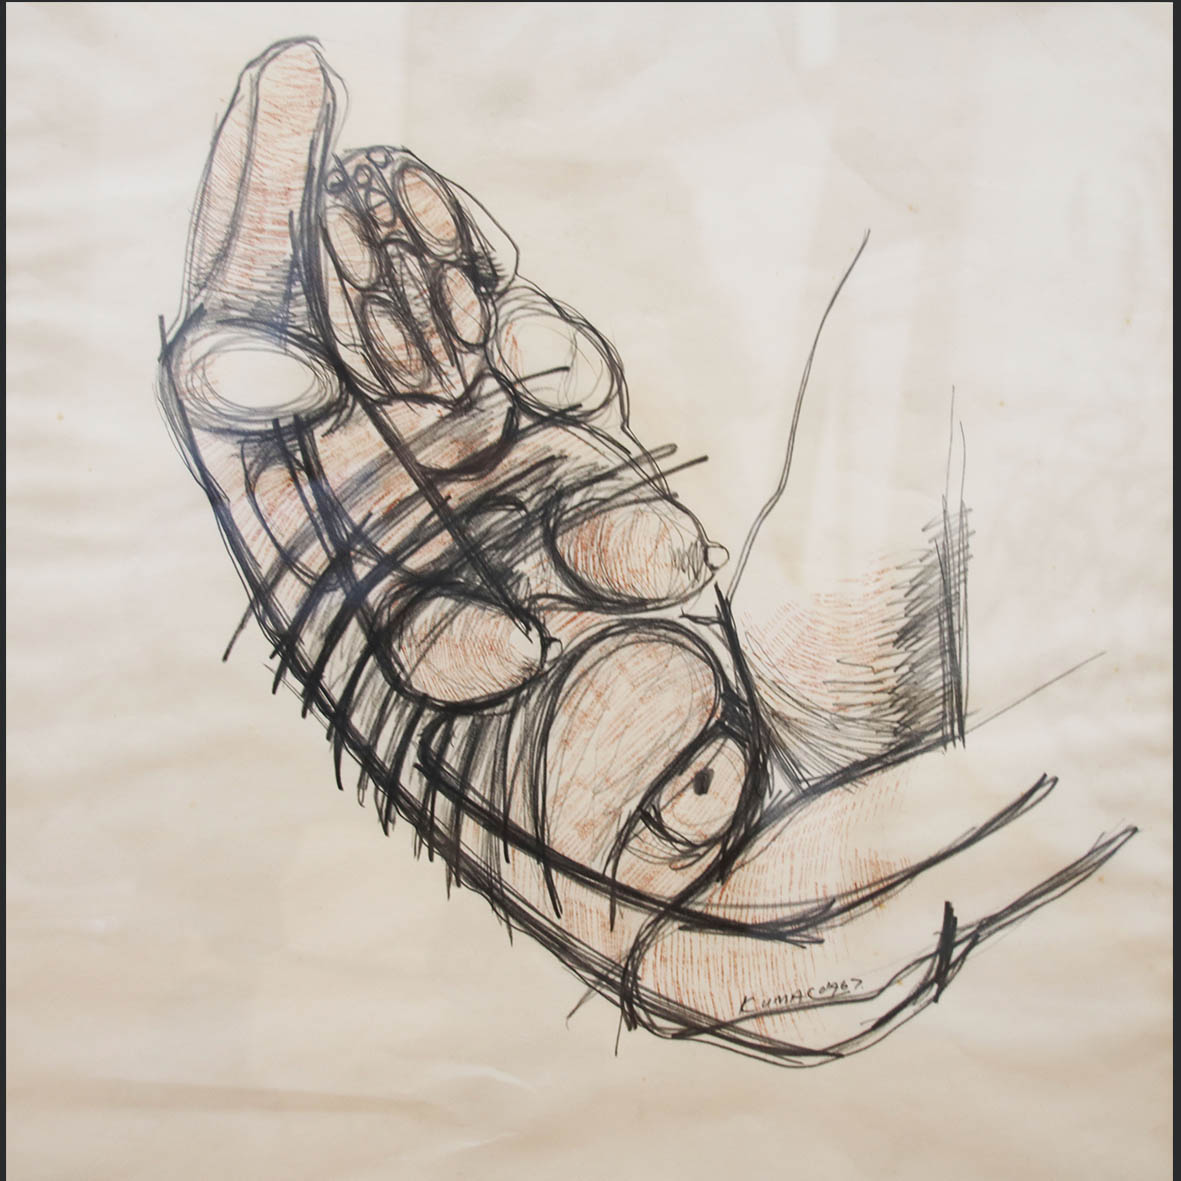 Sydney Kumalo, (SA, 1935-1988), Untitled, signed 1967, sepia and pencil on paper, 42 x 46 cm